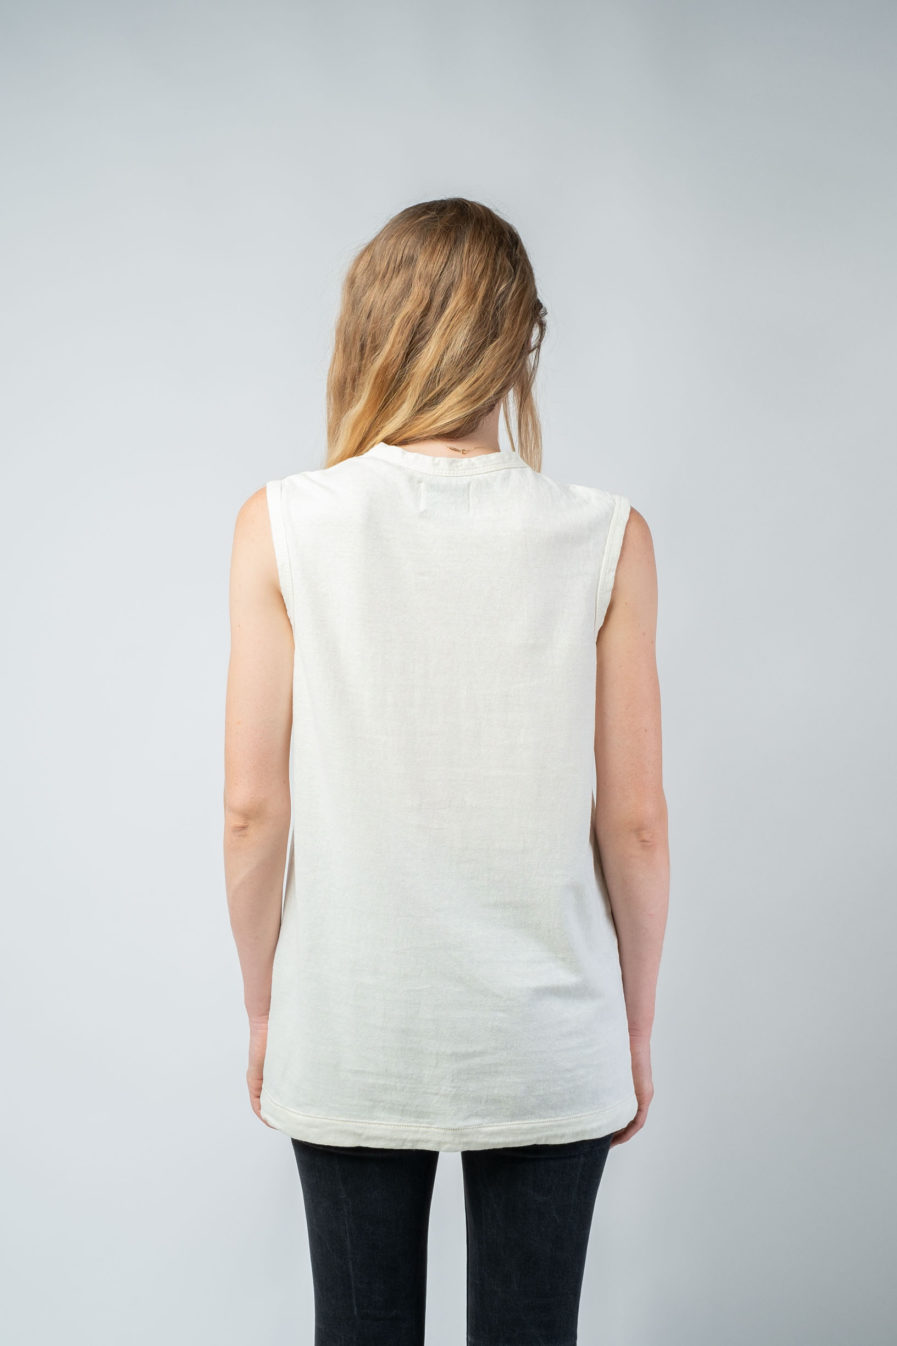 WOMAN unisex singlet tanktop hemp organic cotton VALENTIJN Blank canvas S back